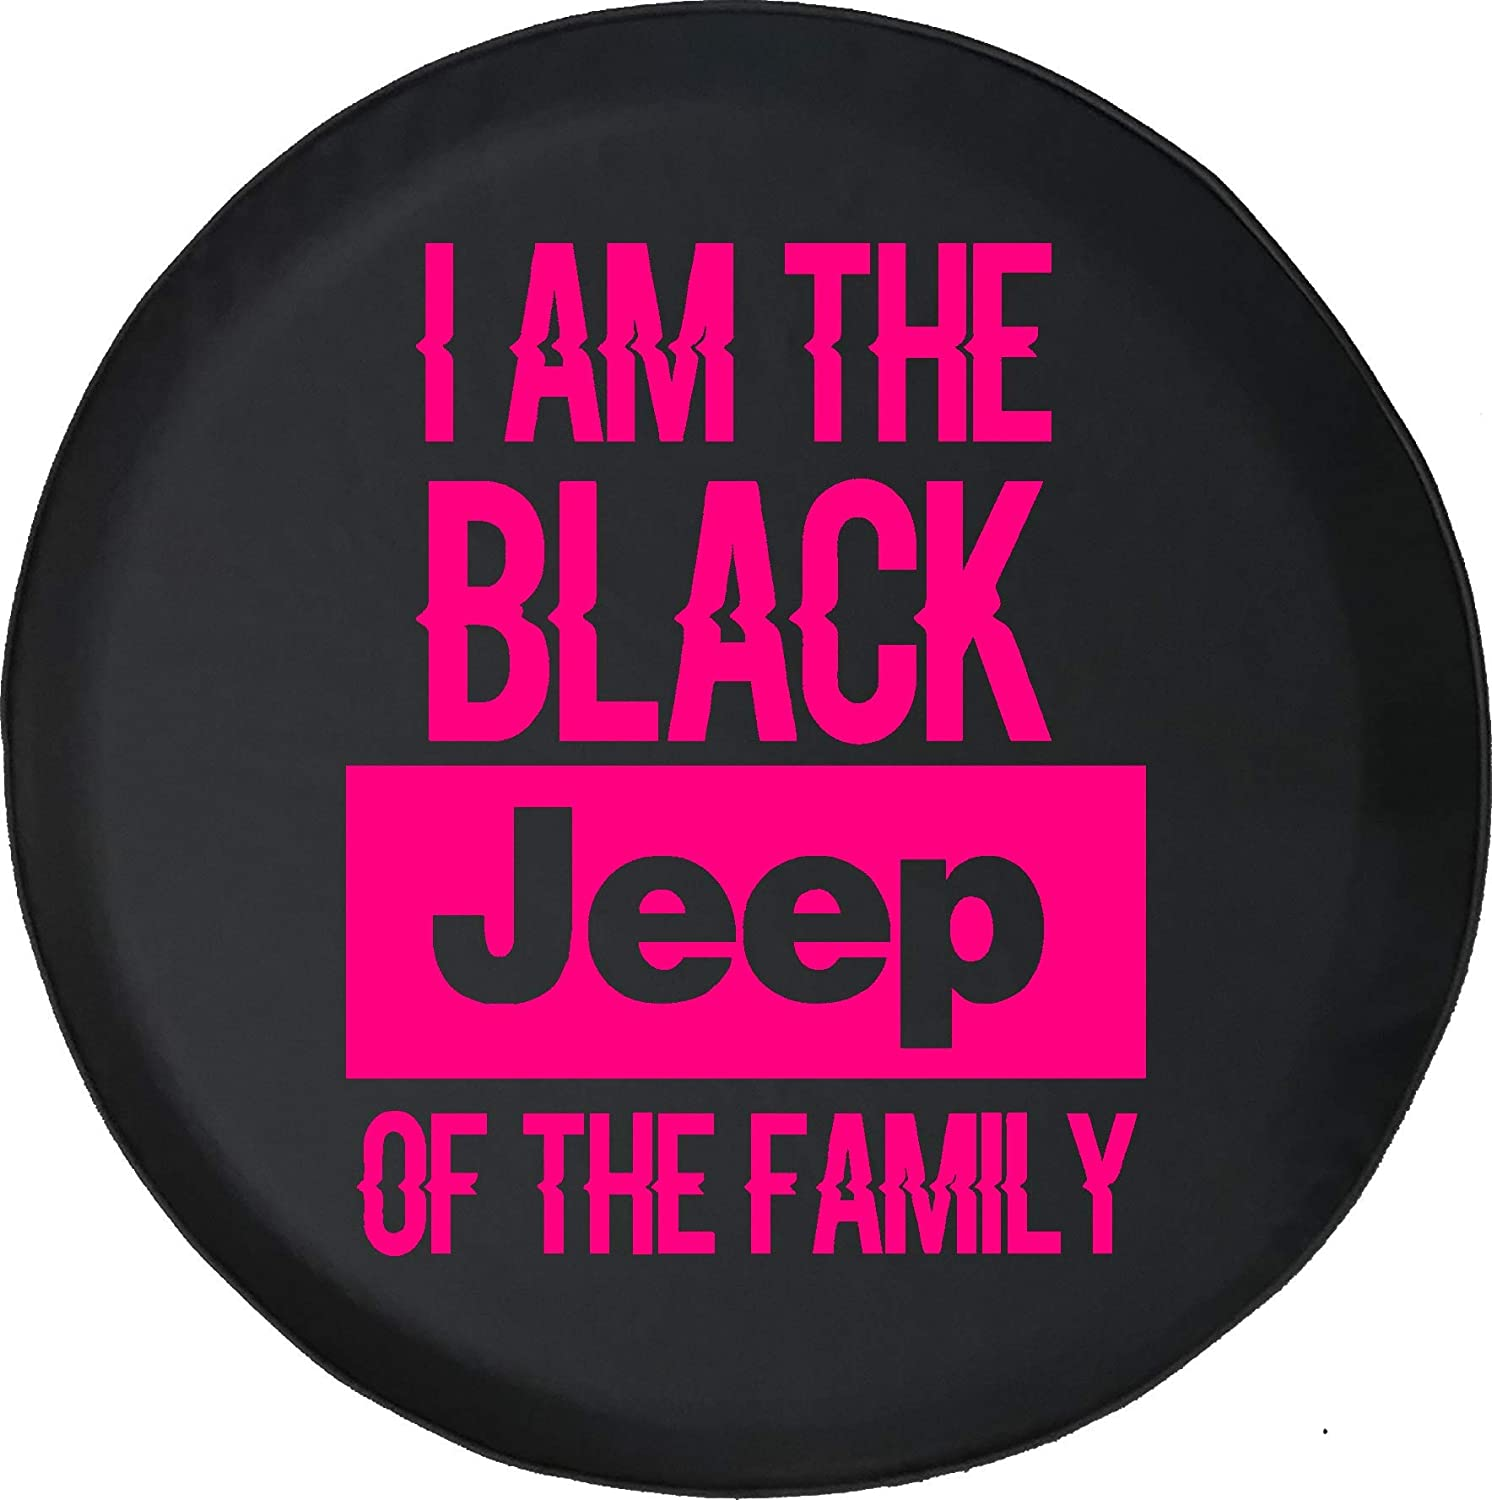 Spare Tire Cover Black Jeep of The Family Fits Jeep Tire Cover or Jeep Wrangler or RV 35 Inch